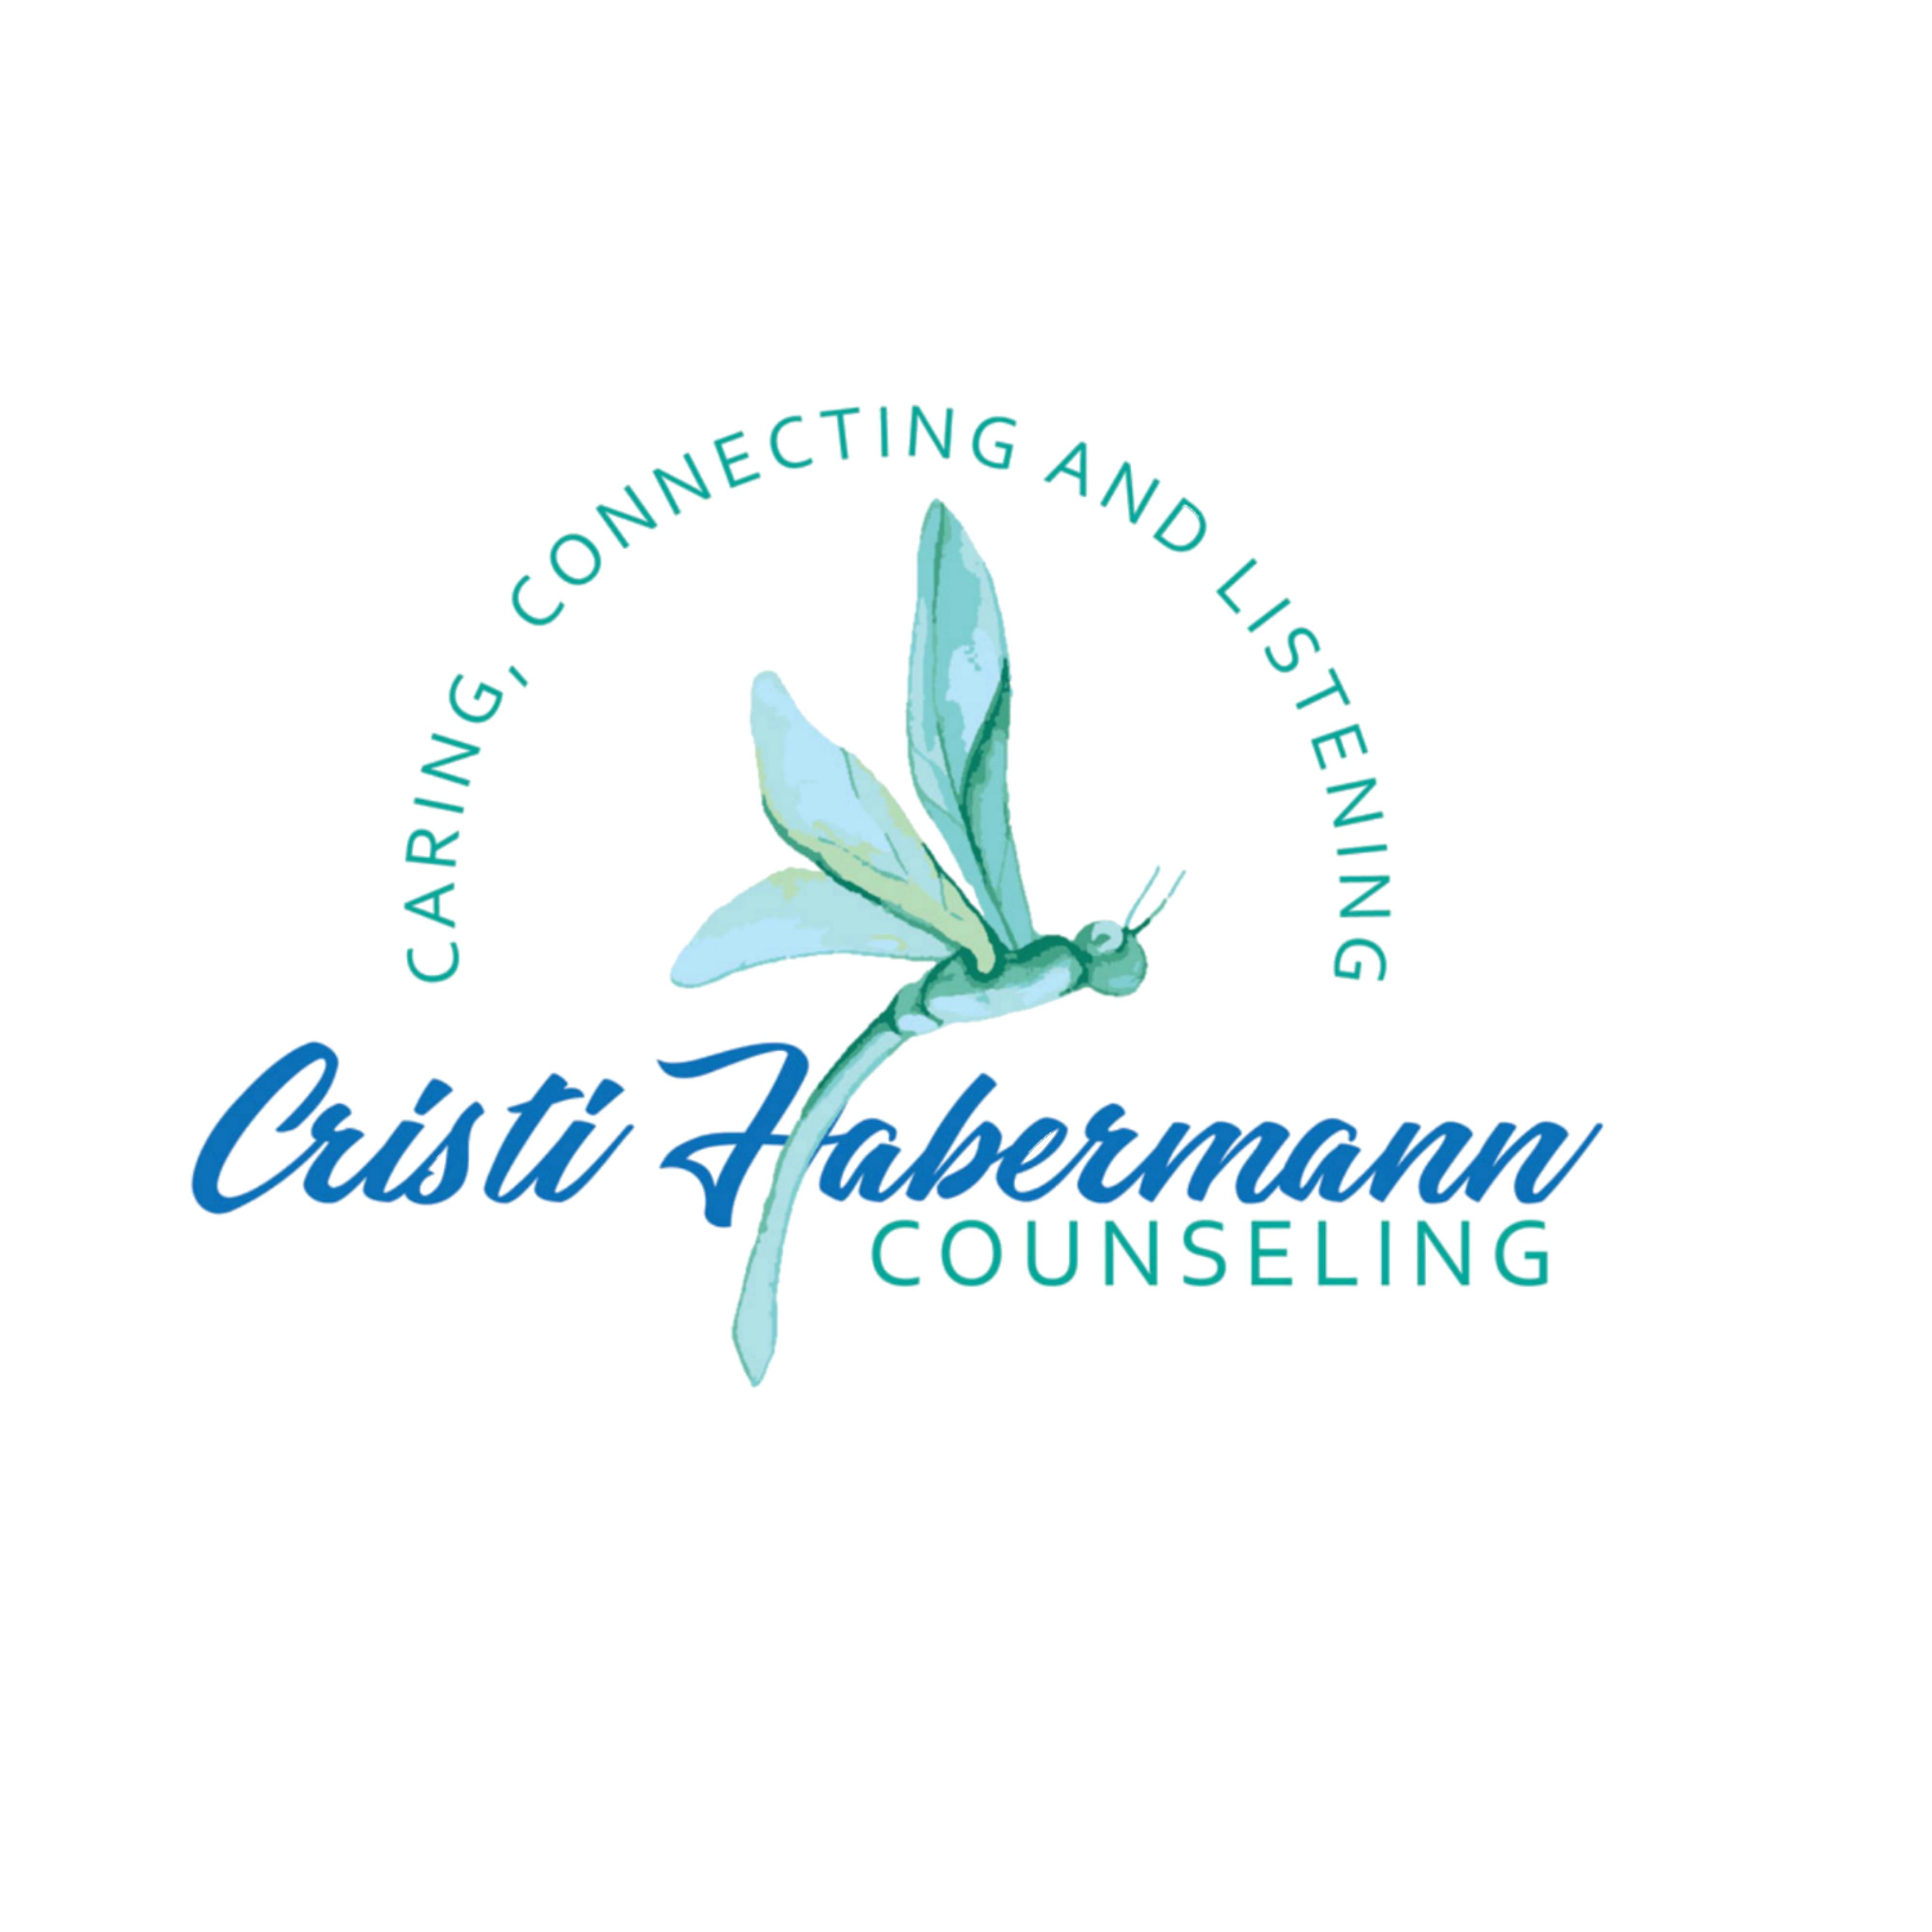 Cristi Habermann MA LPC-MH Counseling and Life Coaching